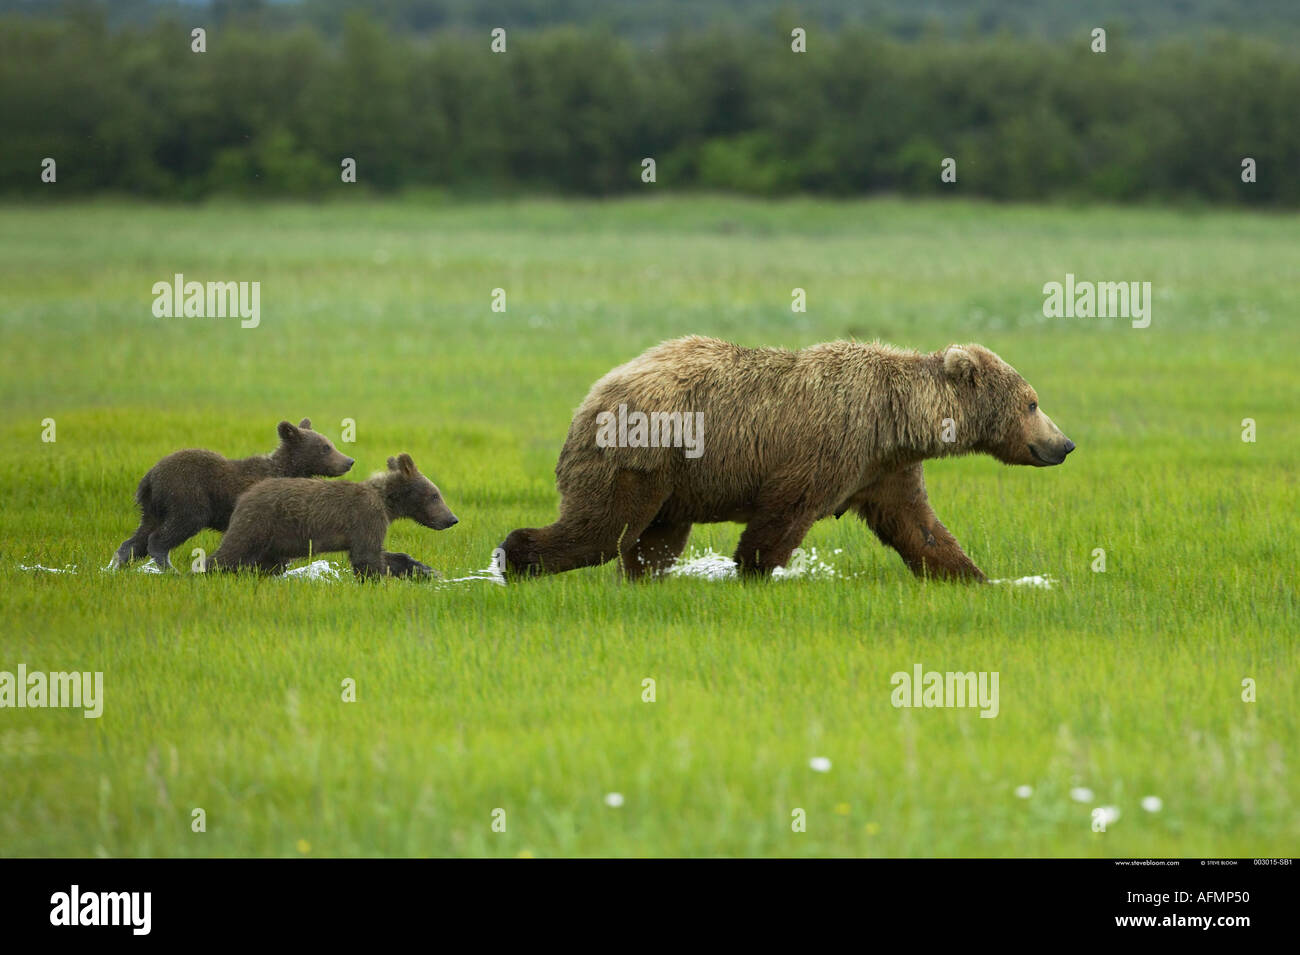 Brown Bear and cubs Katmai National Park Alaska - Stock Image